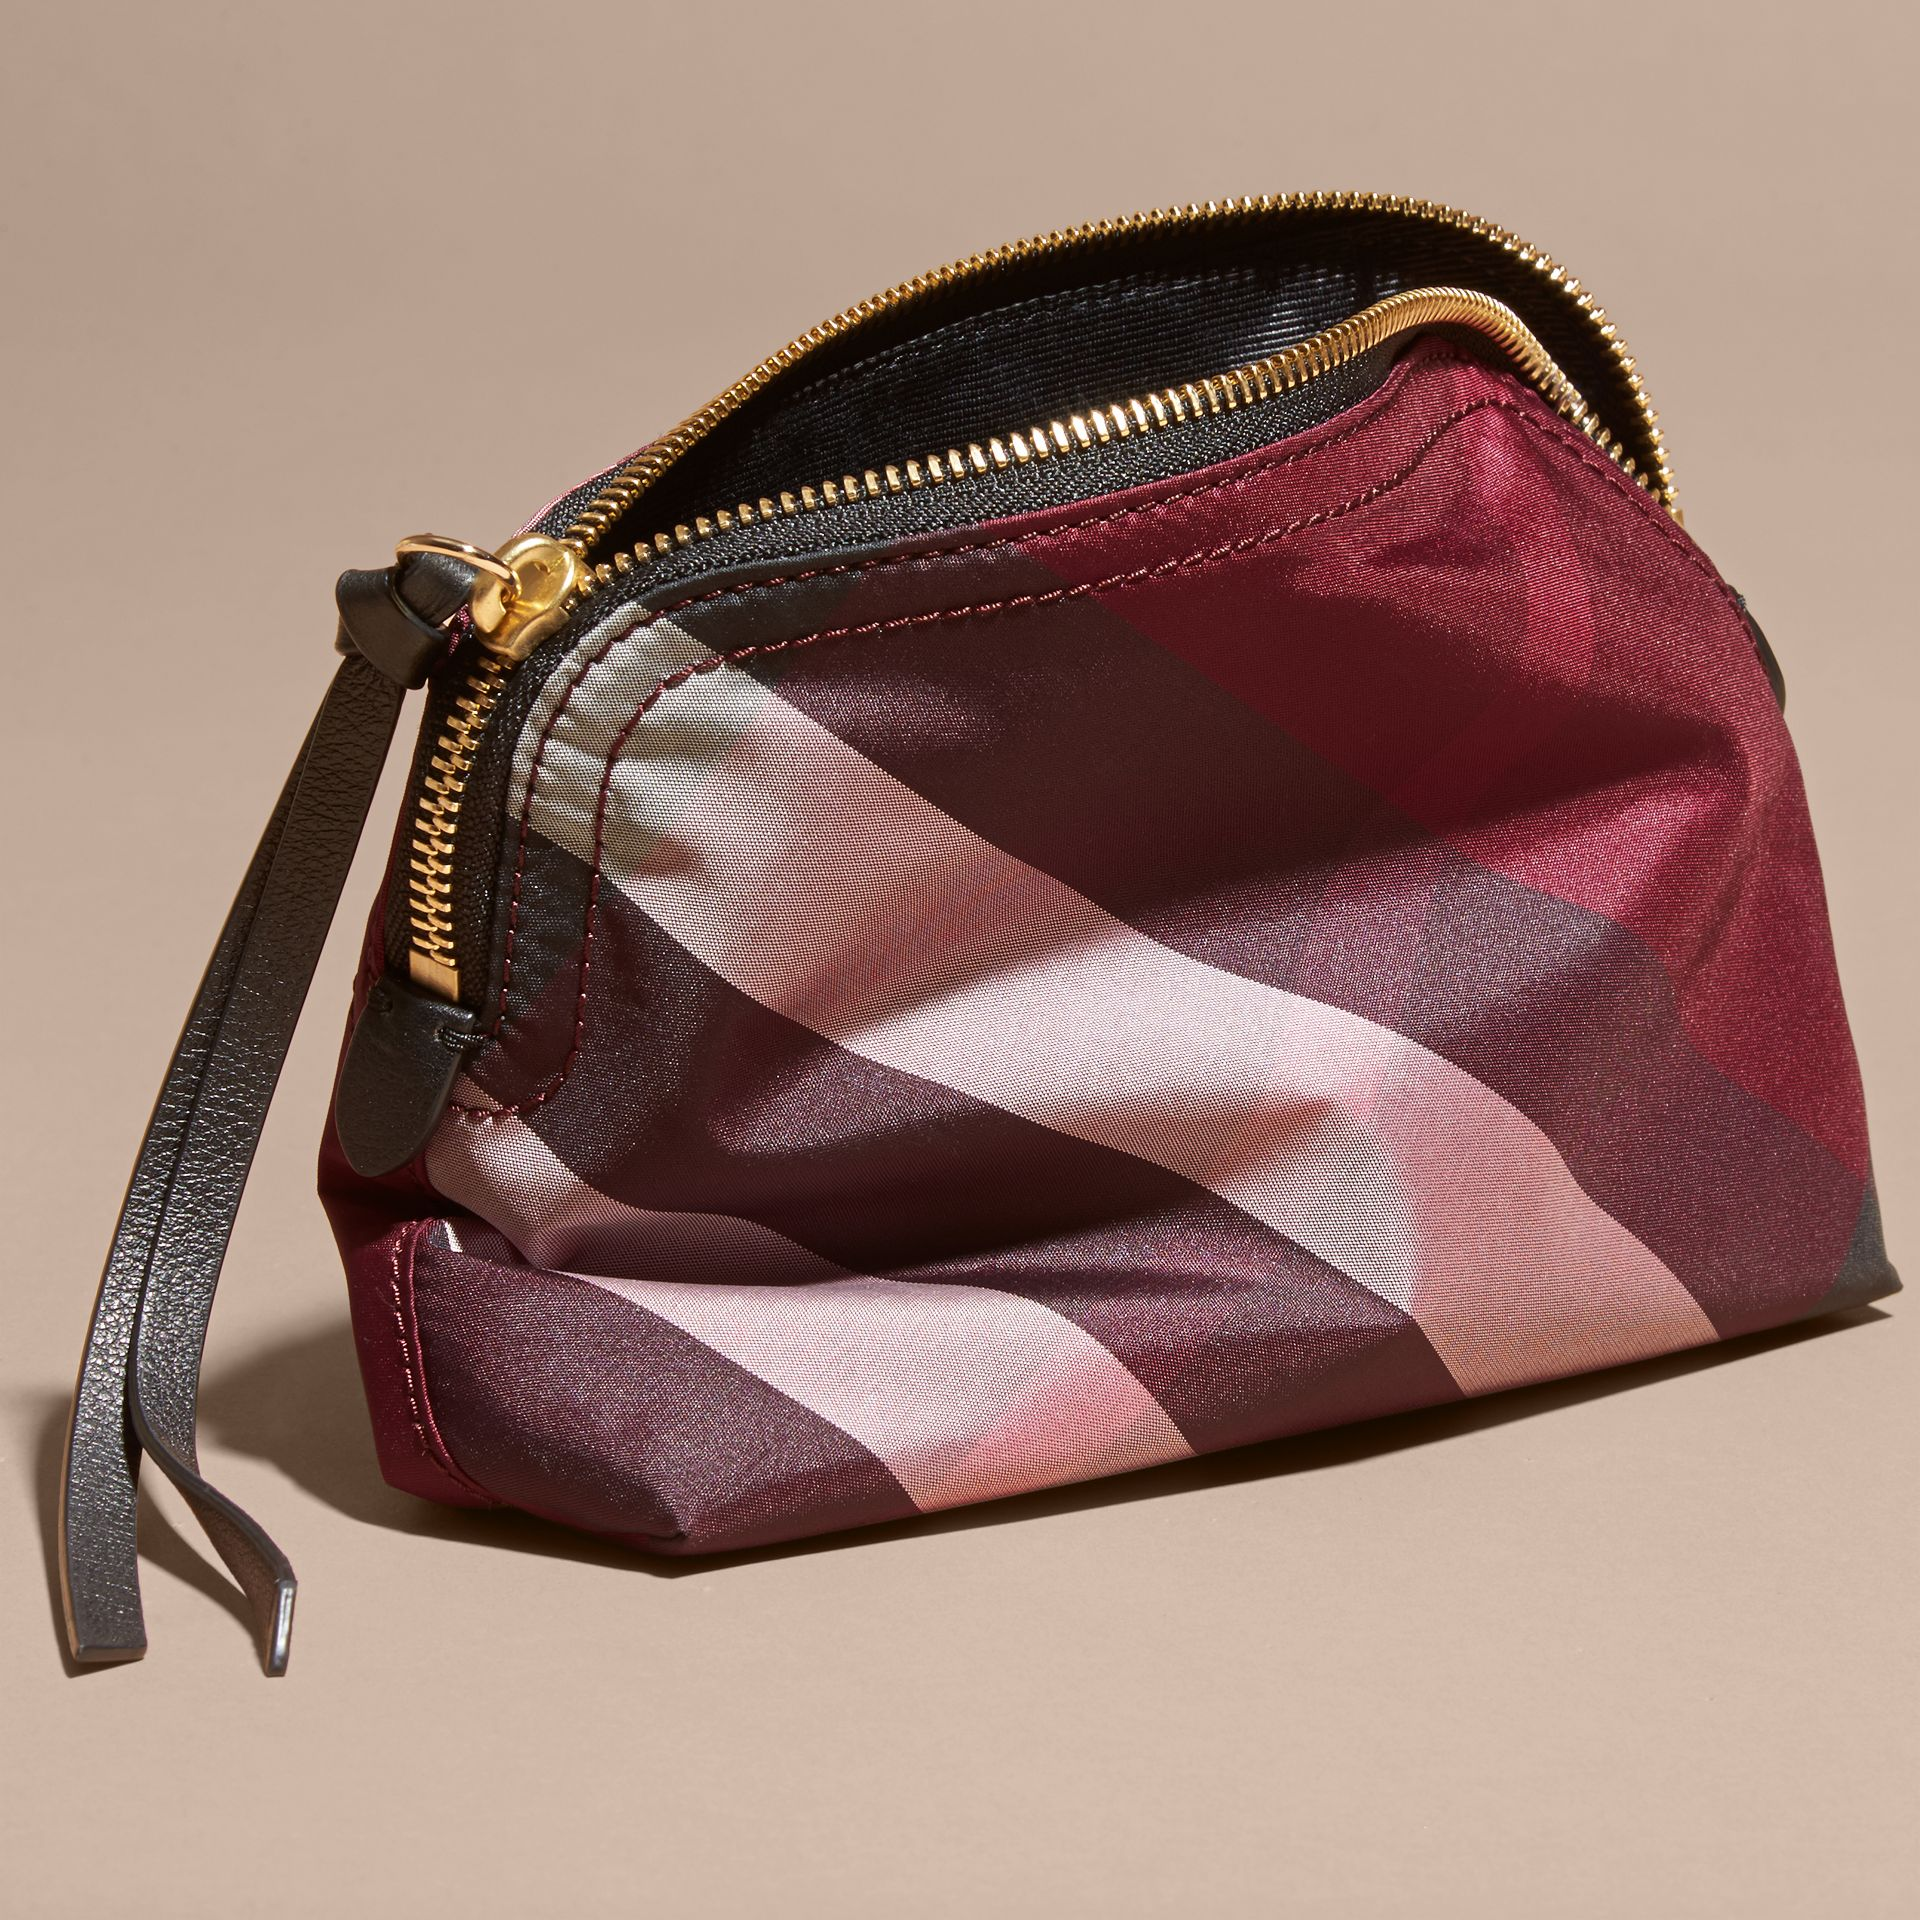 Medium Zip-top Check Technical Pouch in Plum - Women | Burberry Canada - gallery image 4